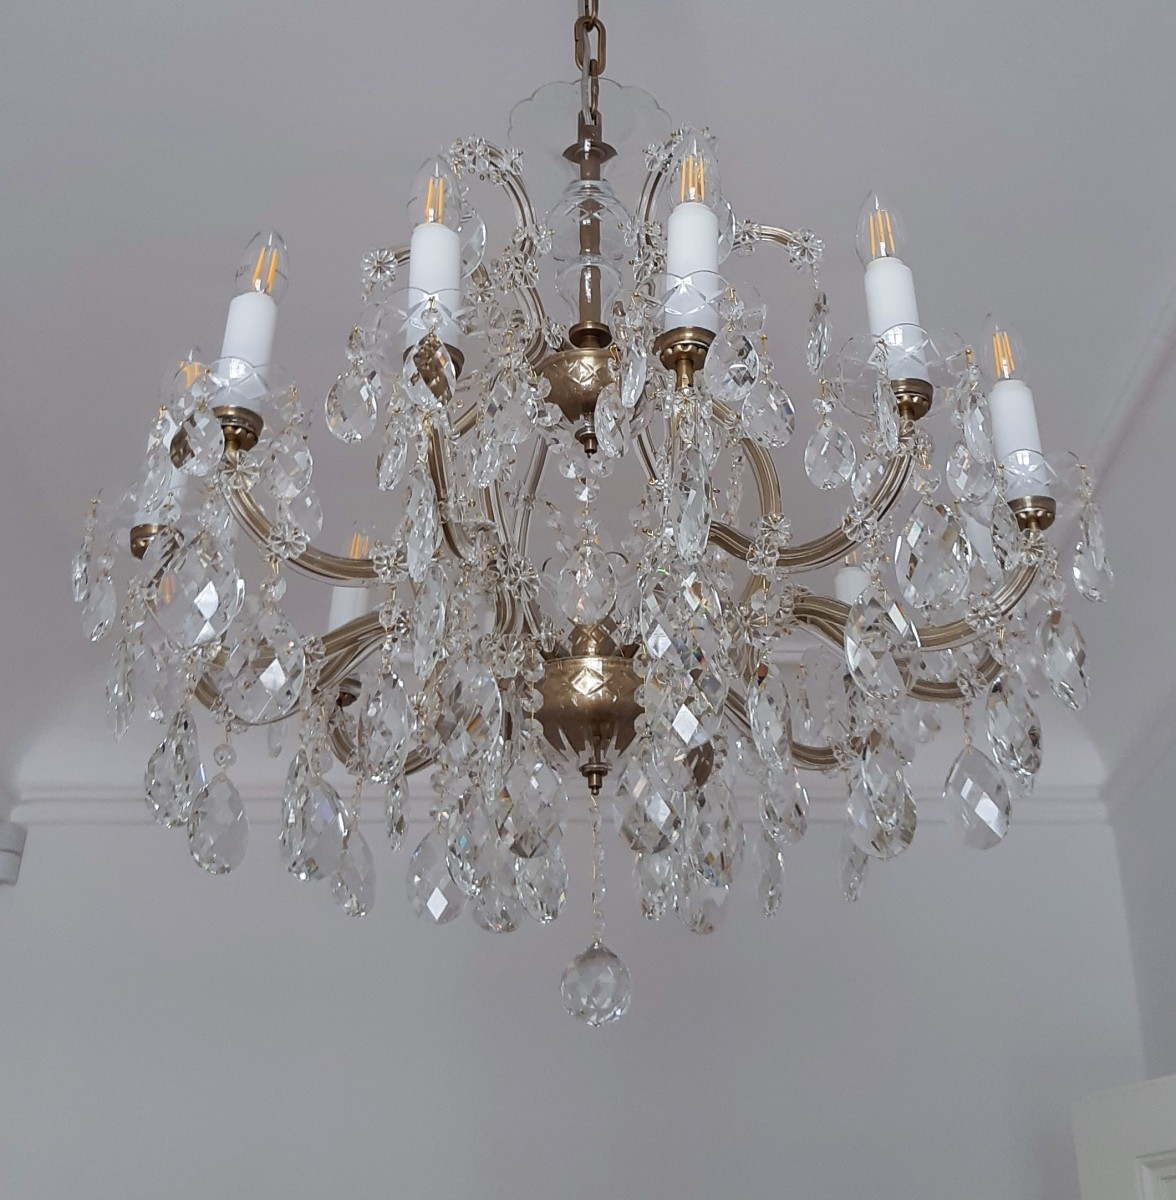 12 Flame Theresian Chandelier With Crystal Almonds Antique Brass Finish Bohemian Glass